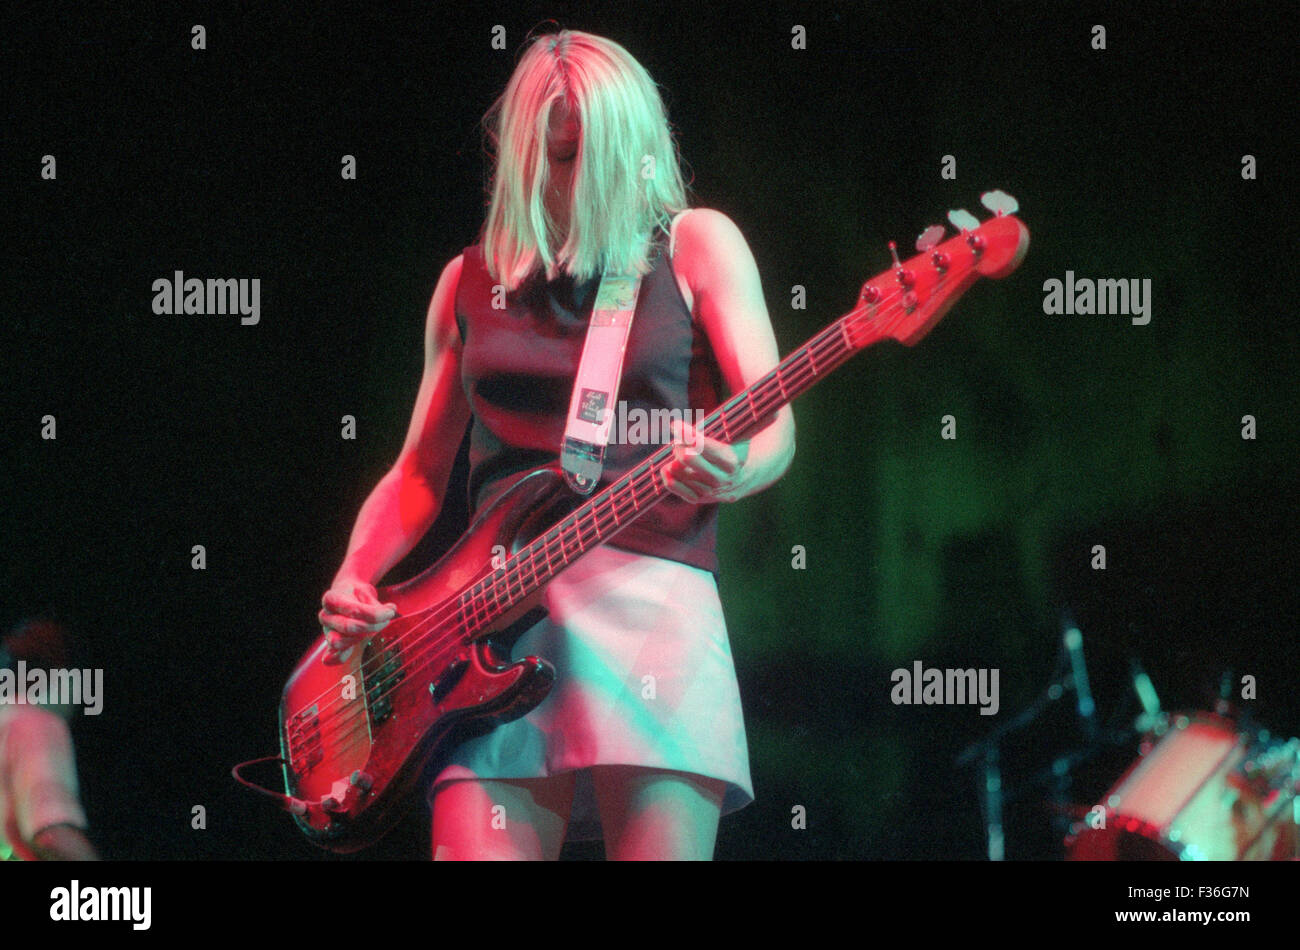 Kim Gordon, of Sonic Youth, performs during the 1995 Lollapalooza concert at Deer Creek Music Center in Noblesville, Stock Photo